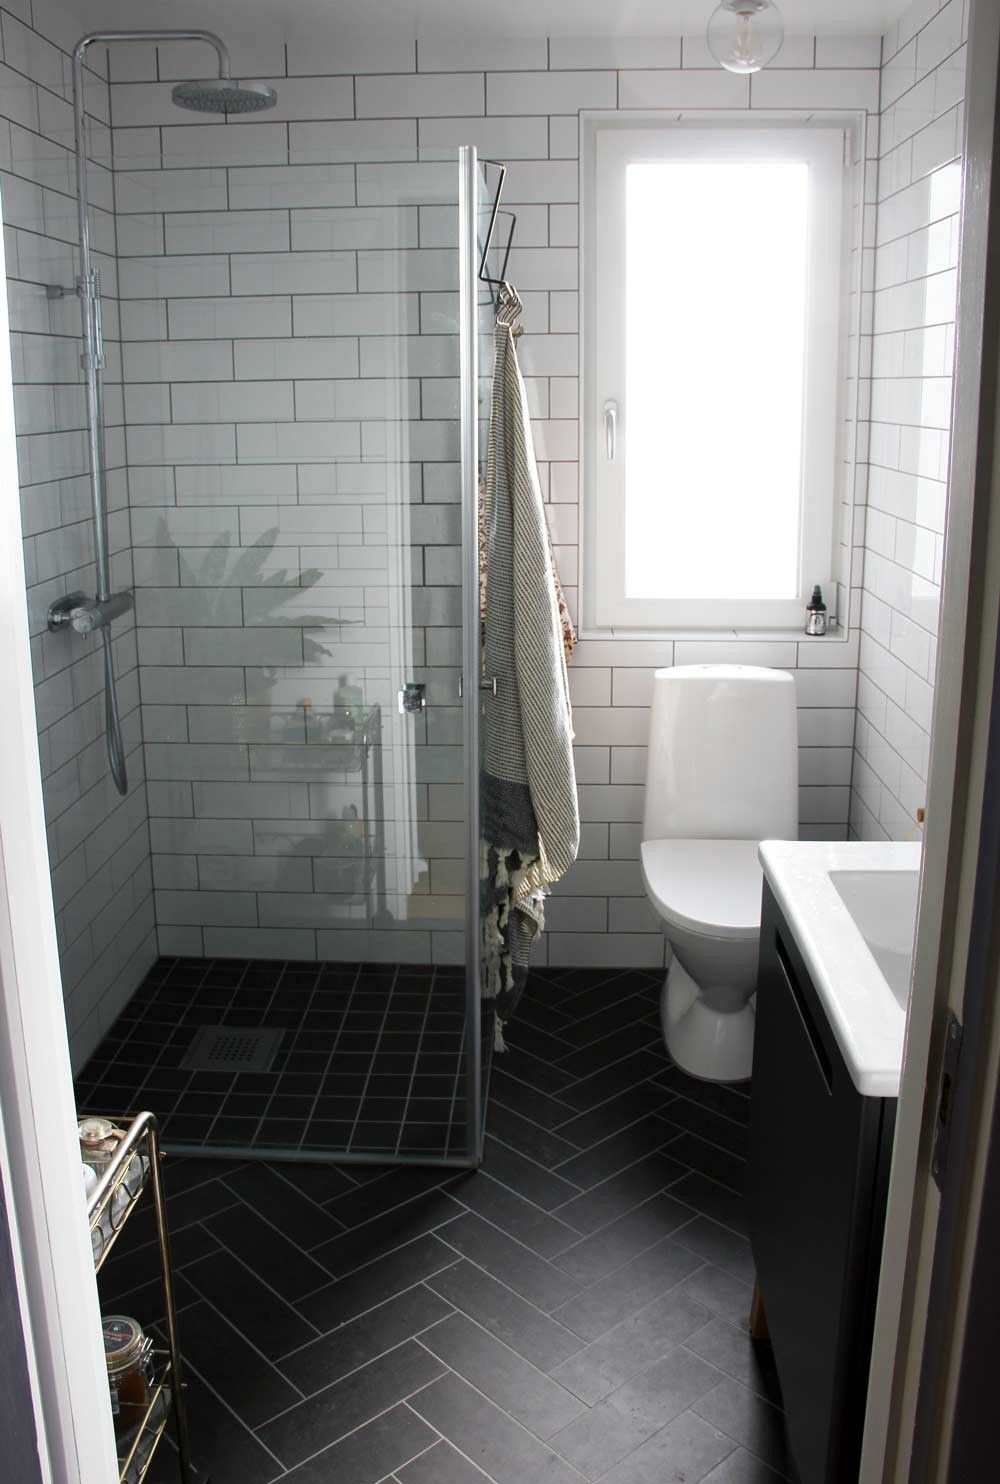 Bathroom Tiles Black And White i love everything about this bathroom! the black herringbone floor